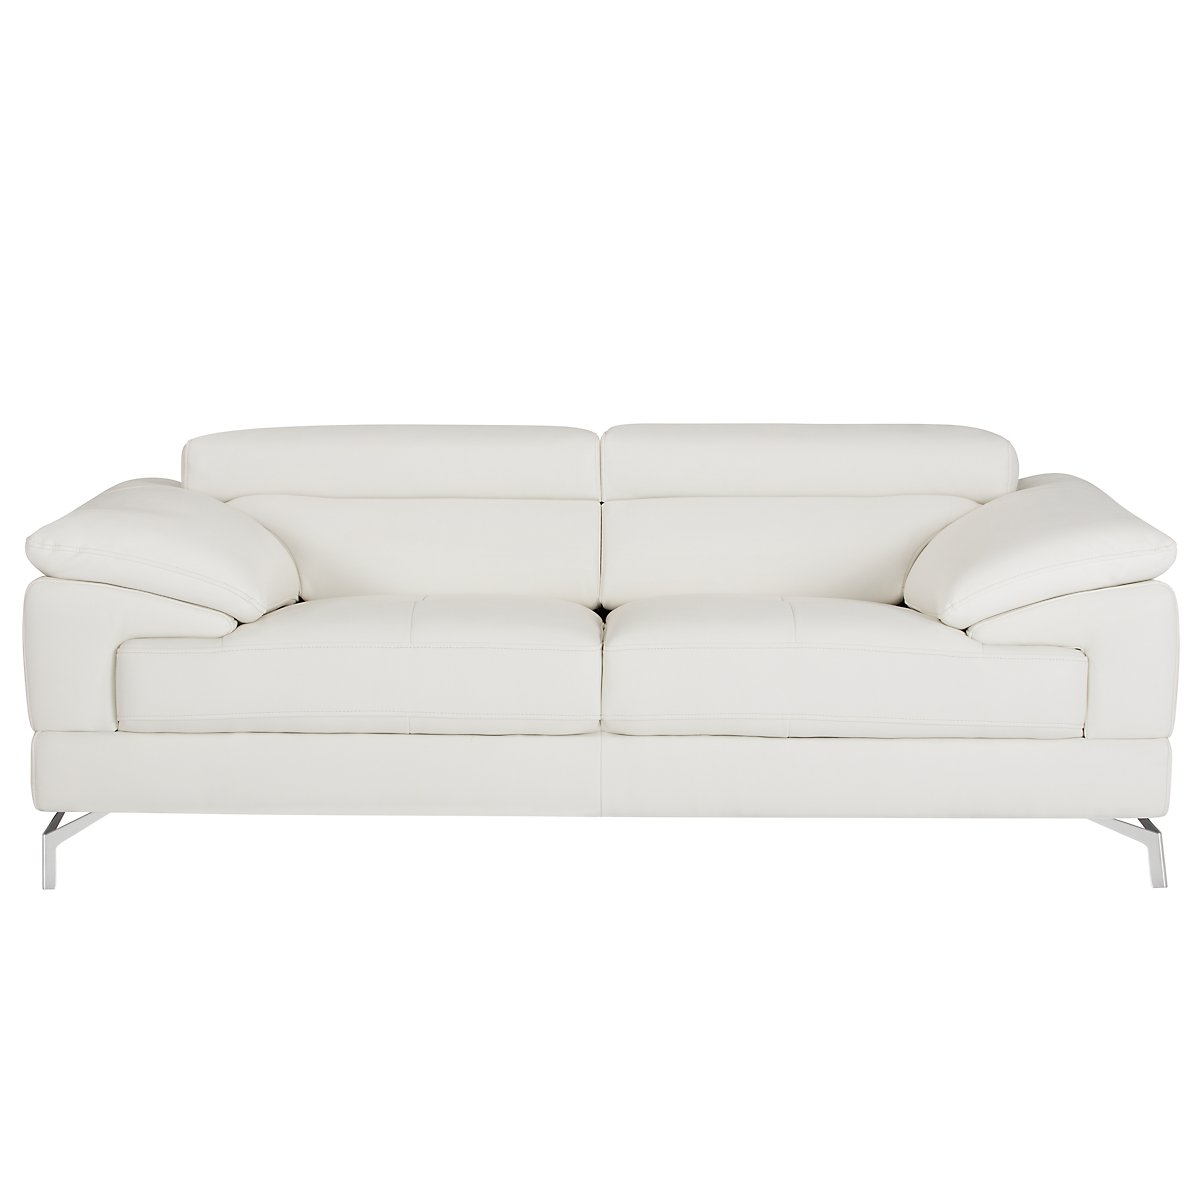 city furniture  living room furniture  loveseats - dash white microfiber loveseat